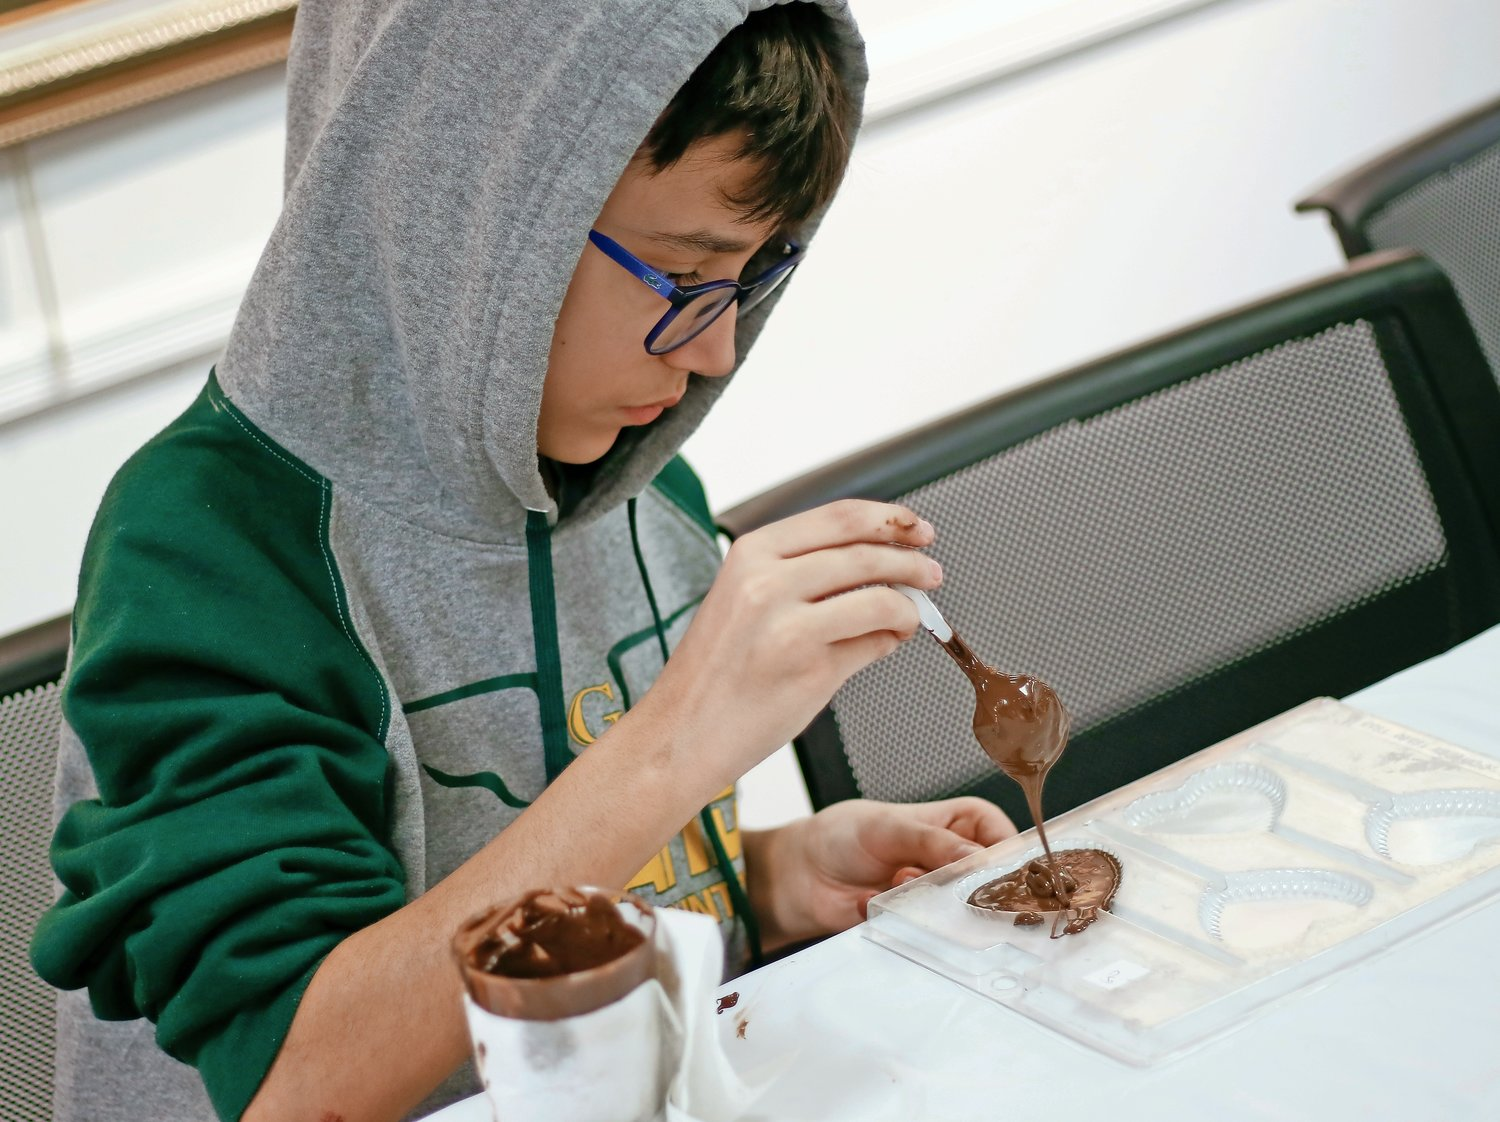 Giovanni Scimeca, 12, made sure to fill the chocolate mold to maximum capacity.